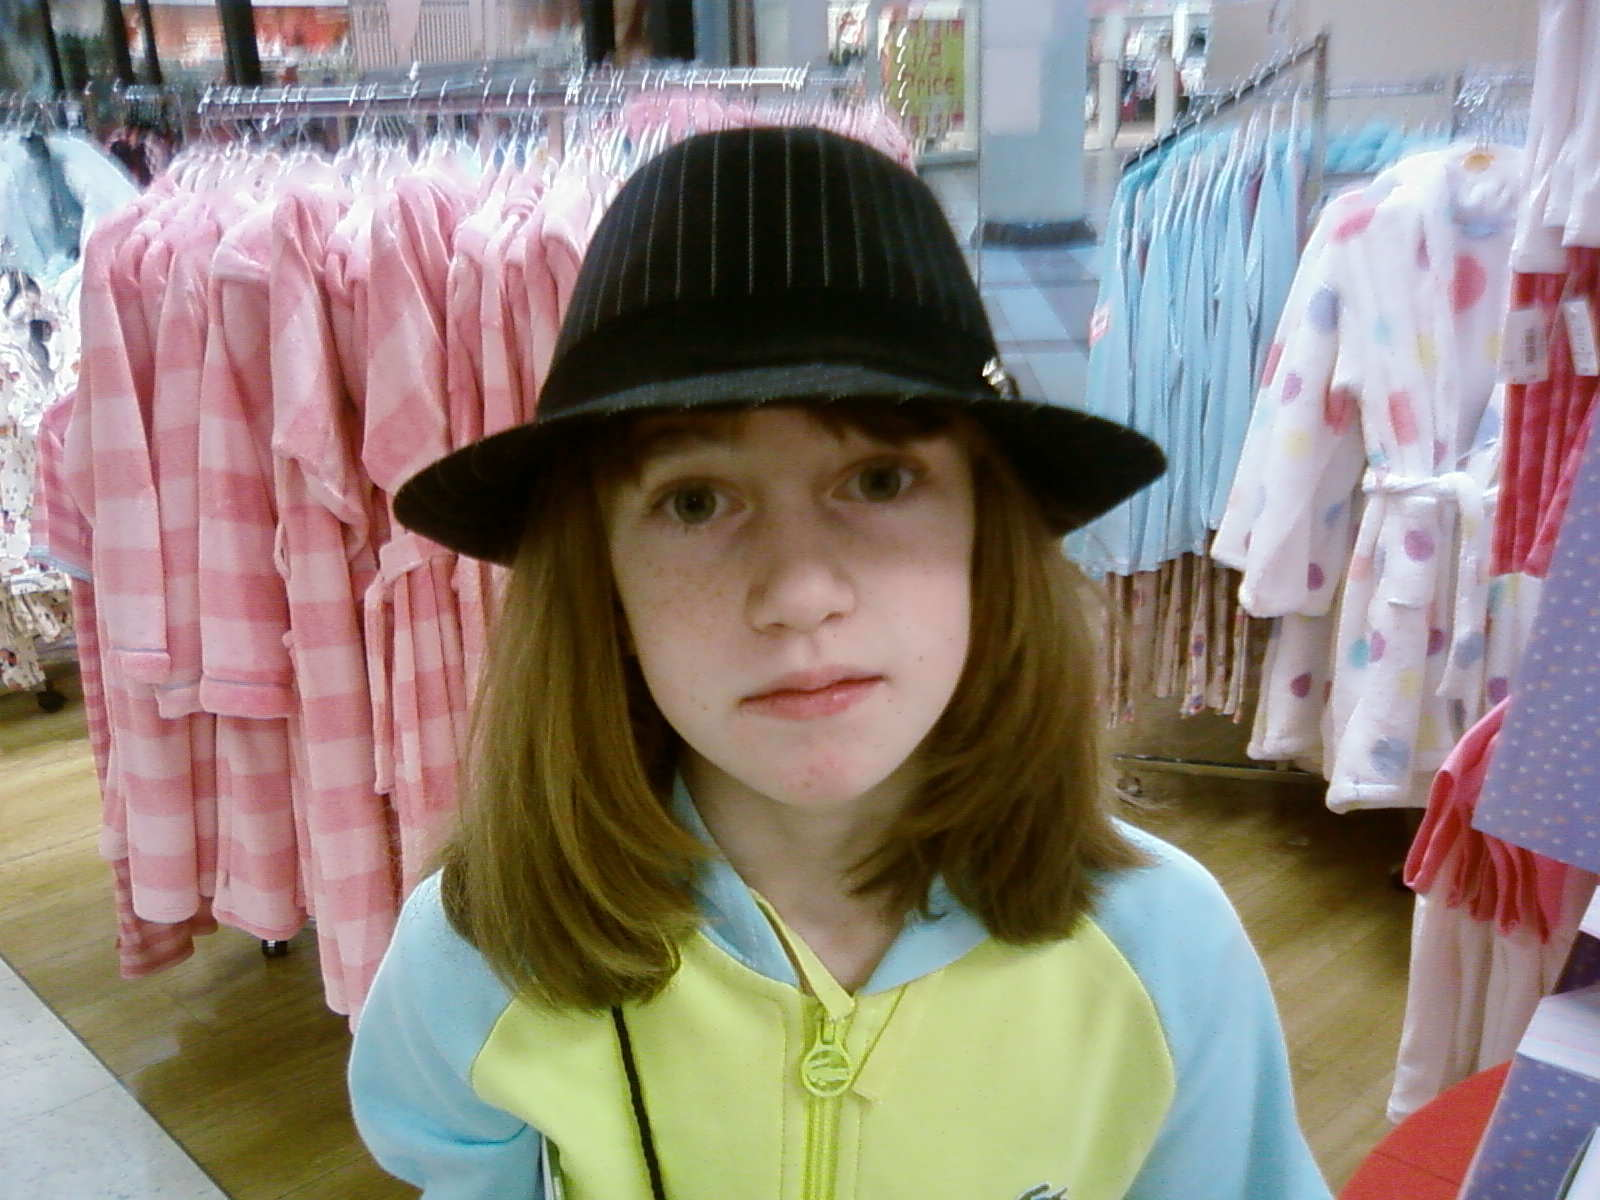 - Its-me-chloe-with-a-funny-hat-on-lolz-chloep-3389160-1600-1200